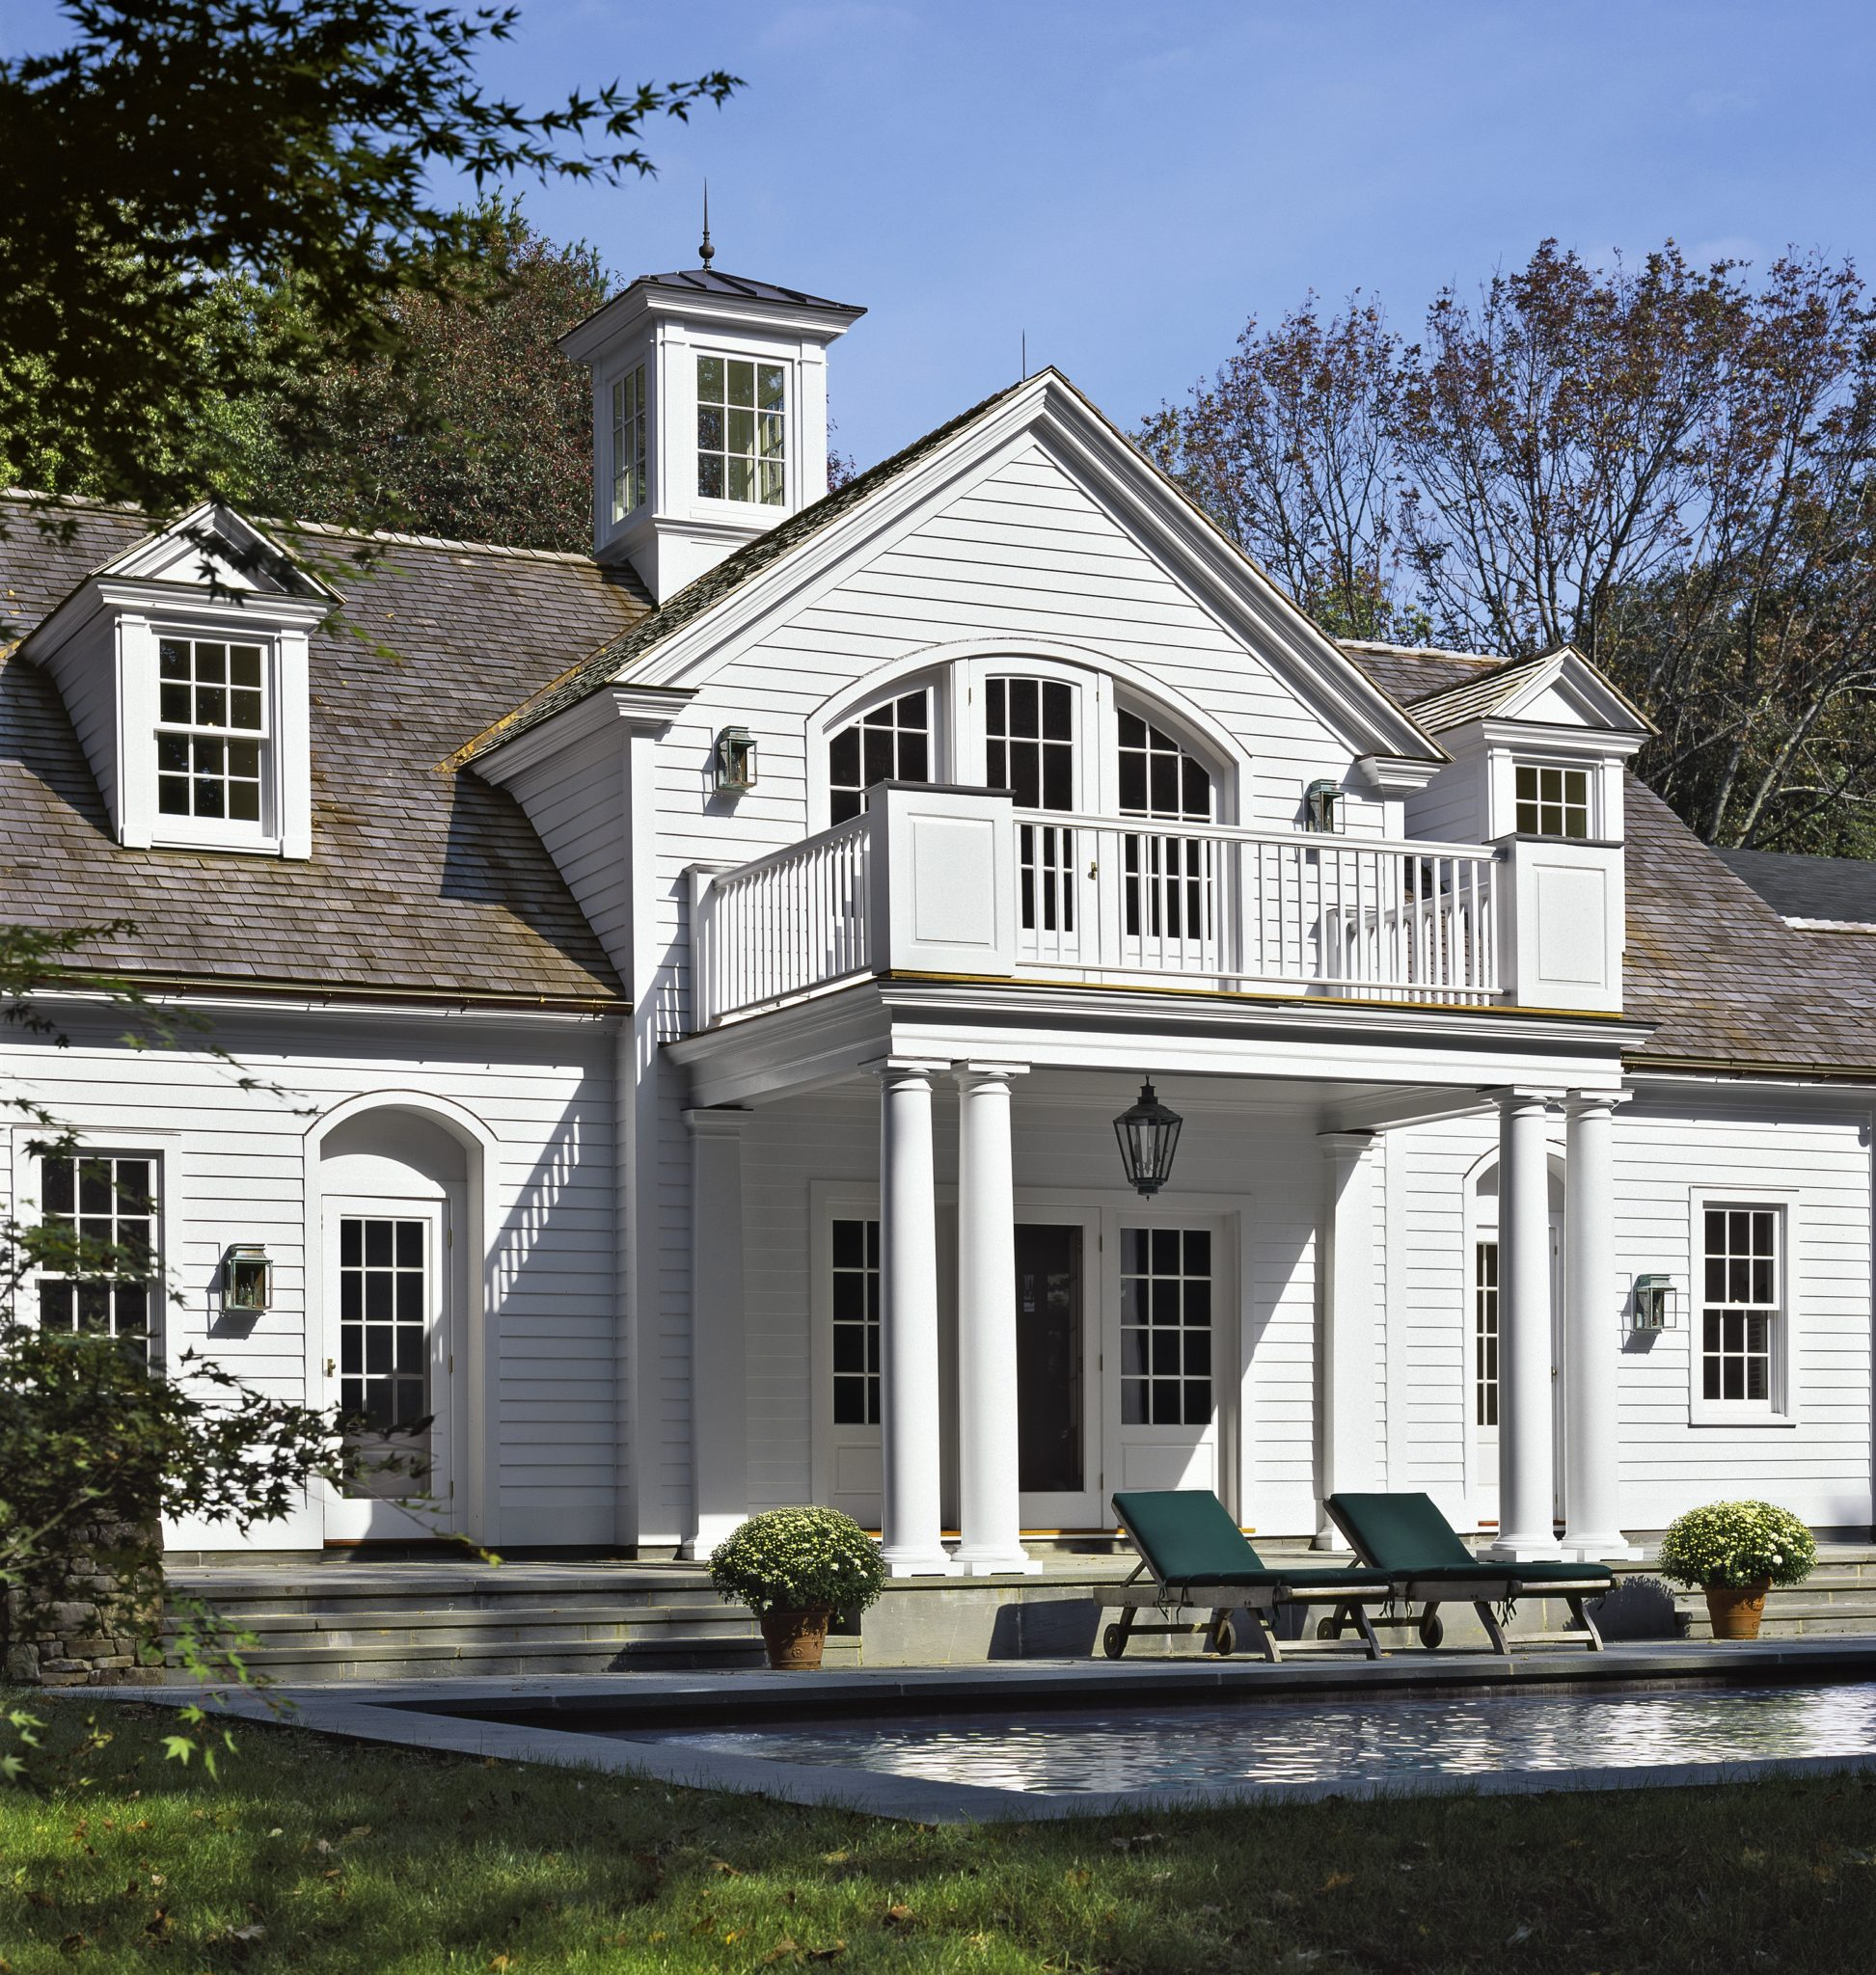 New classical Georgian pool house with portico and cupola. by Haver & Skolnick Architects